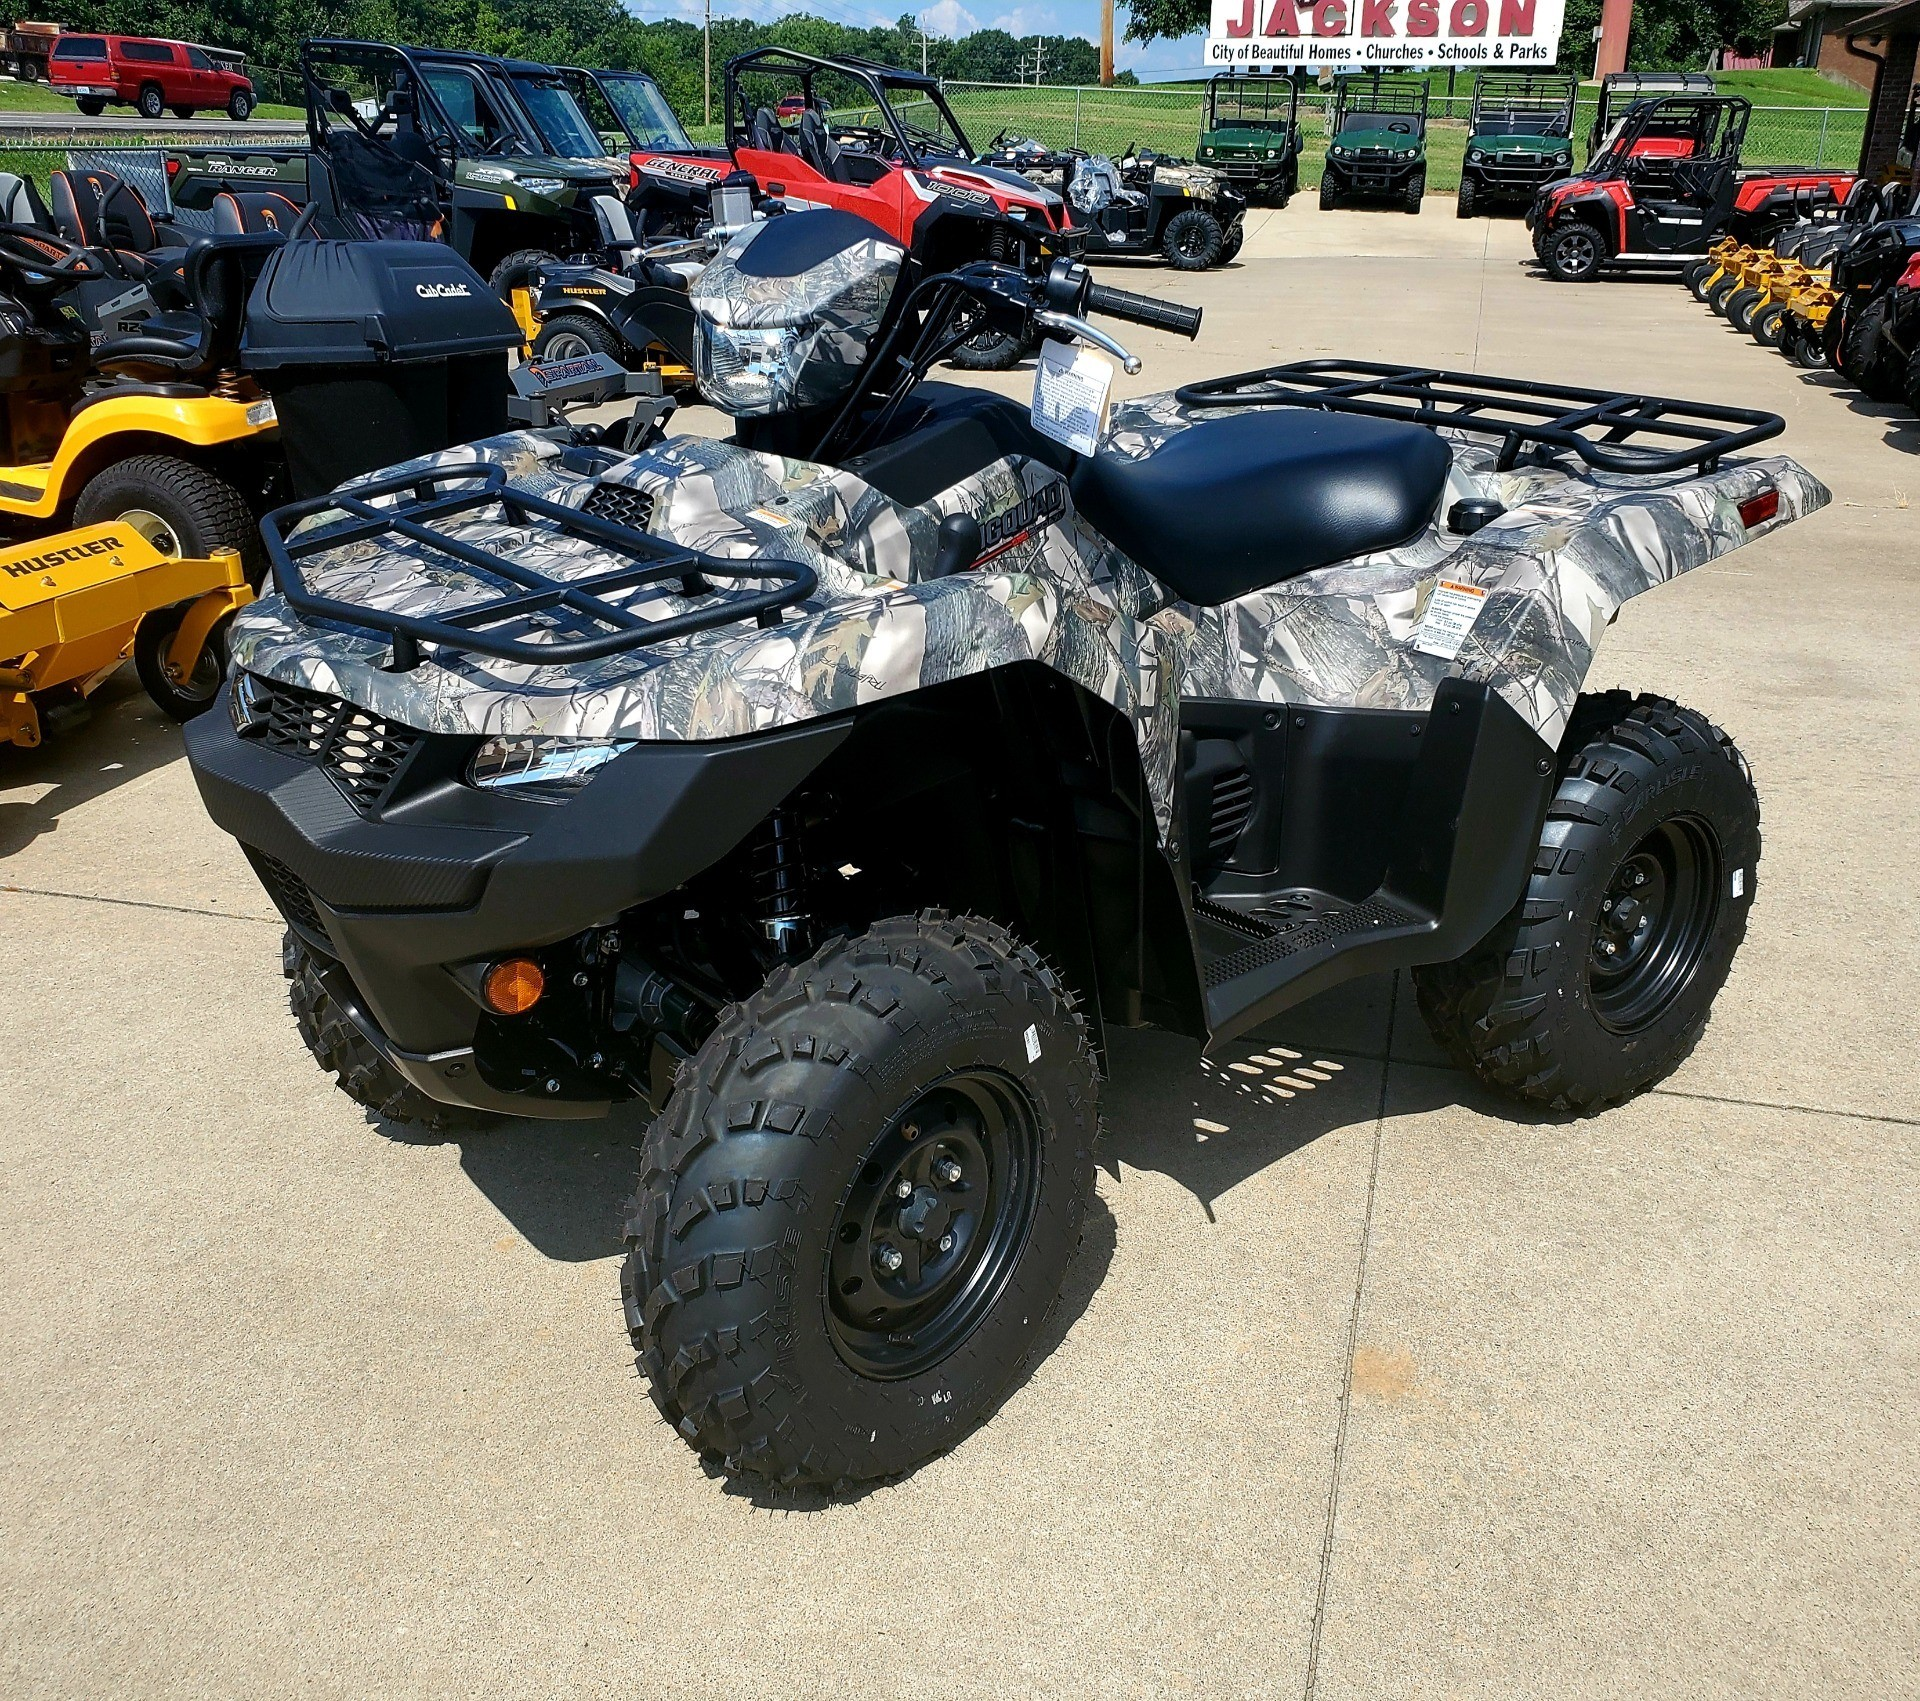 2019 Suzuki KingQuad 500AXi Power Steering Camo in Jackson, Missouri - Photo 1